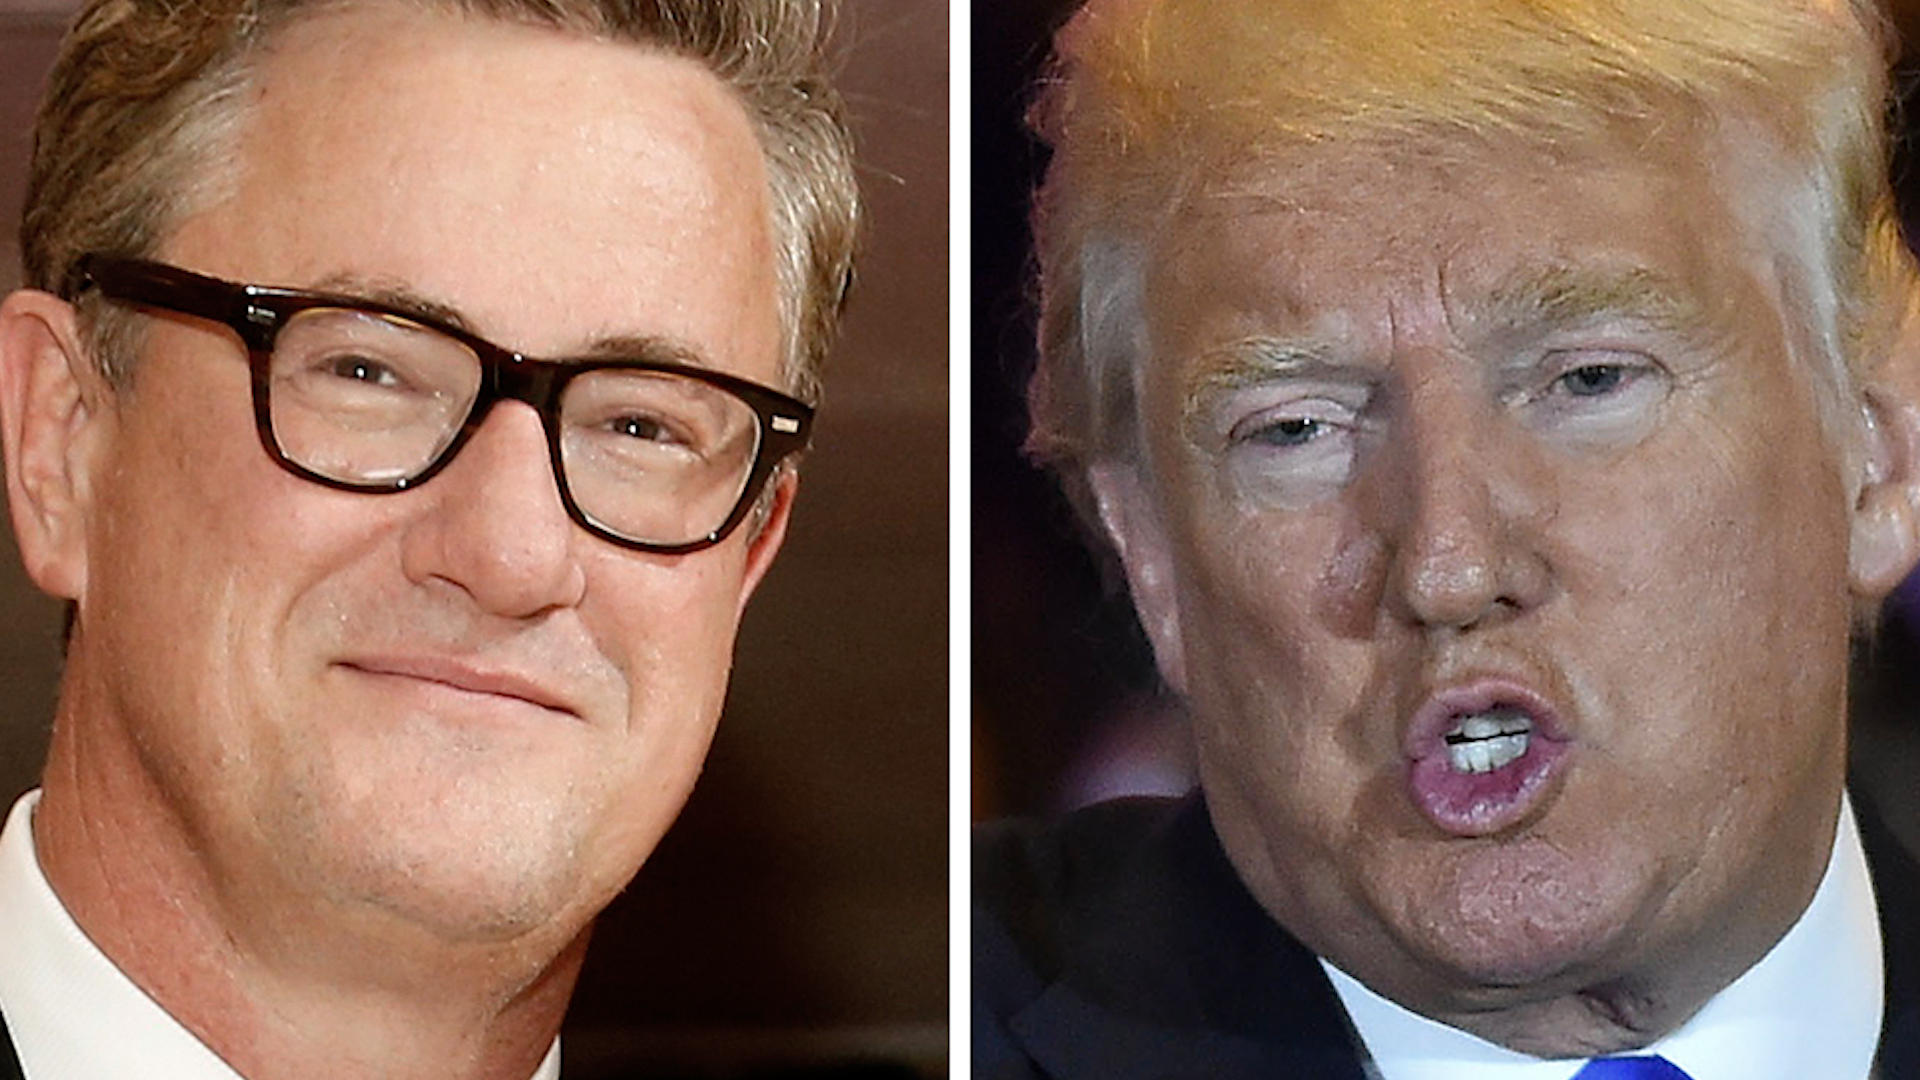 GOP Rep. Warns Trump On Wild Scarborough Murder Claim: 'Just Stop. It Will Destroy Us.'